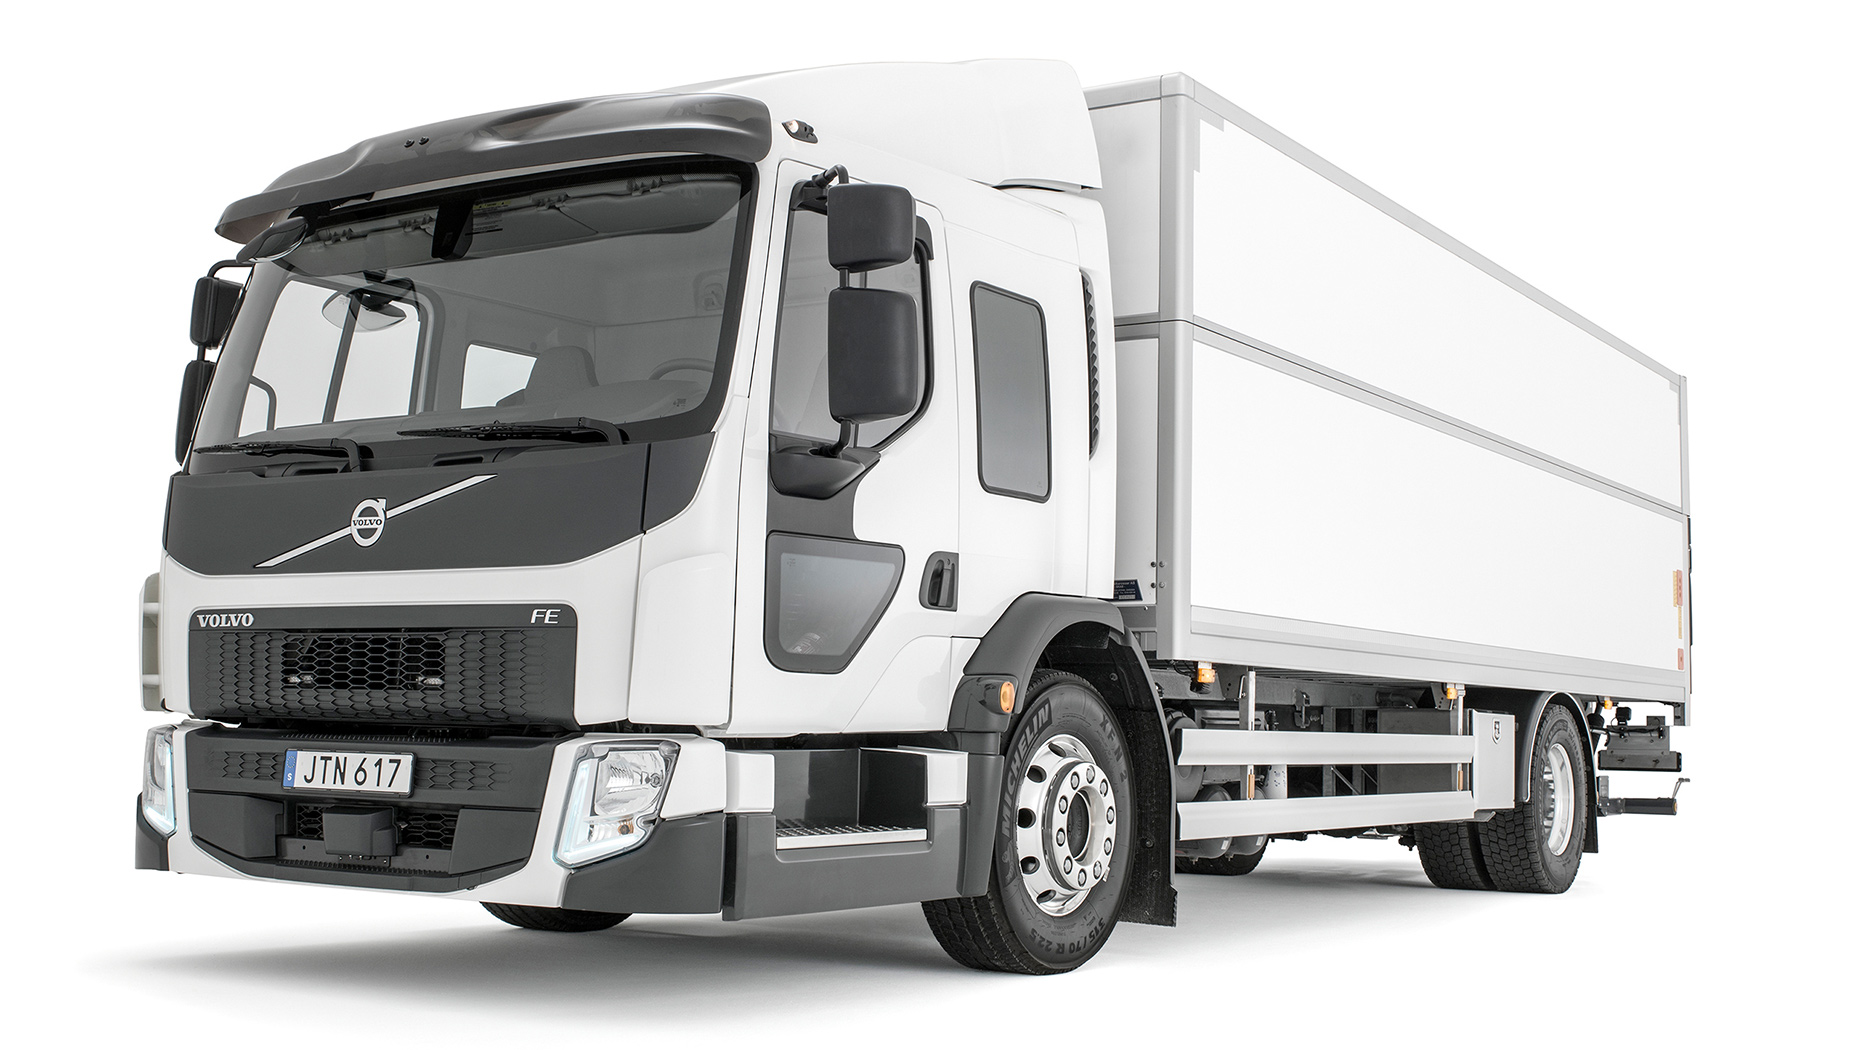 Volvo FE with several new features